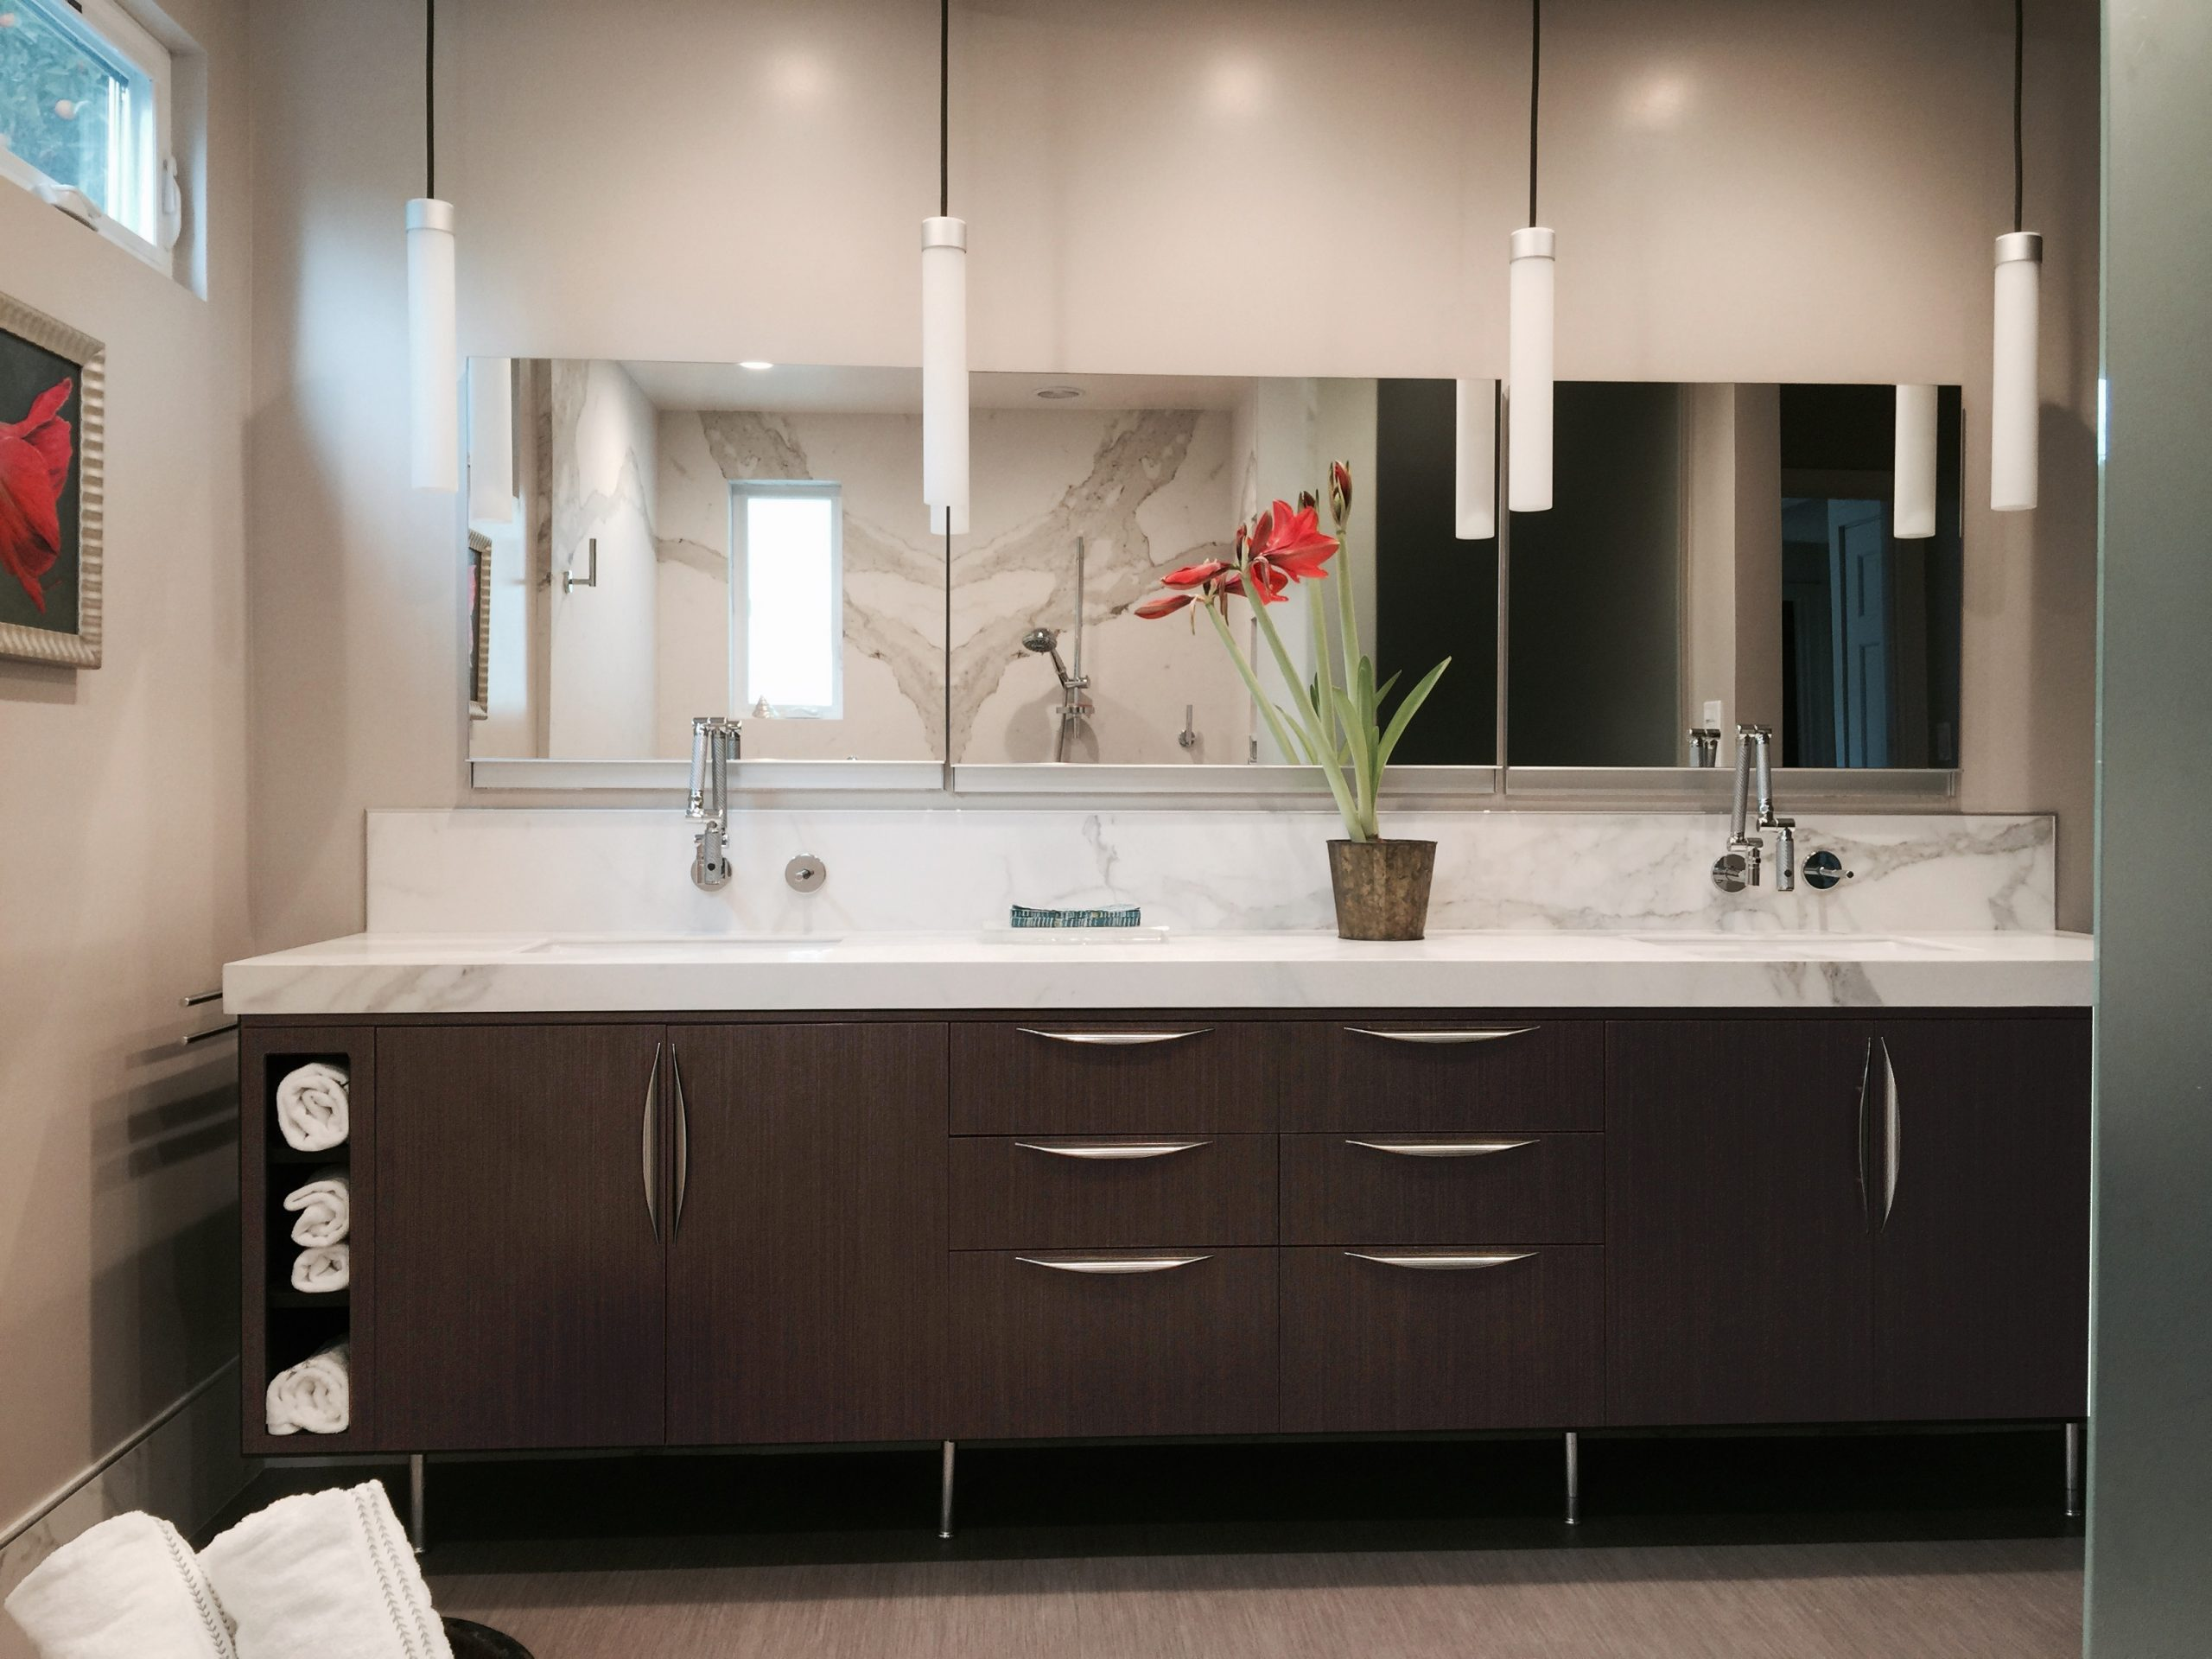 Custom Cabinet by Central Valley Casework, Kohler Faucets and Robern Upper Cabinets from Build.com